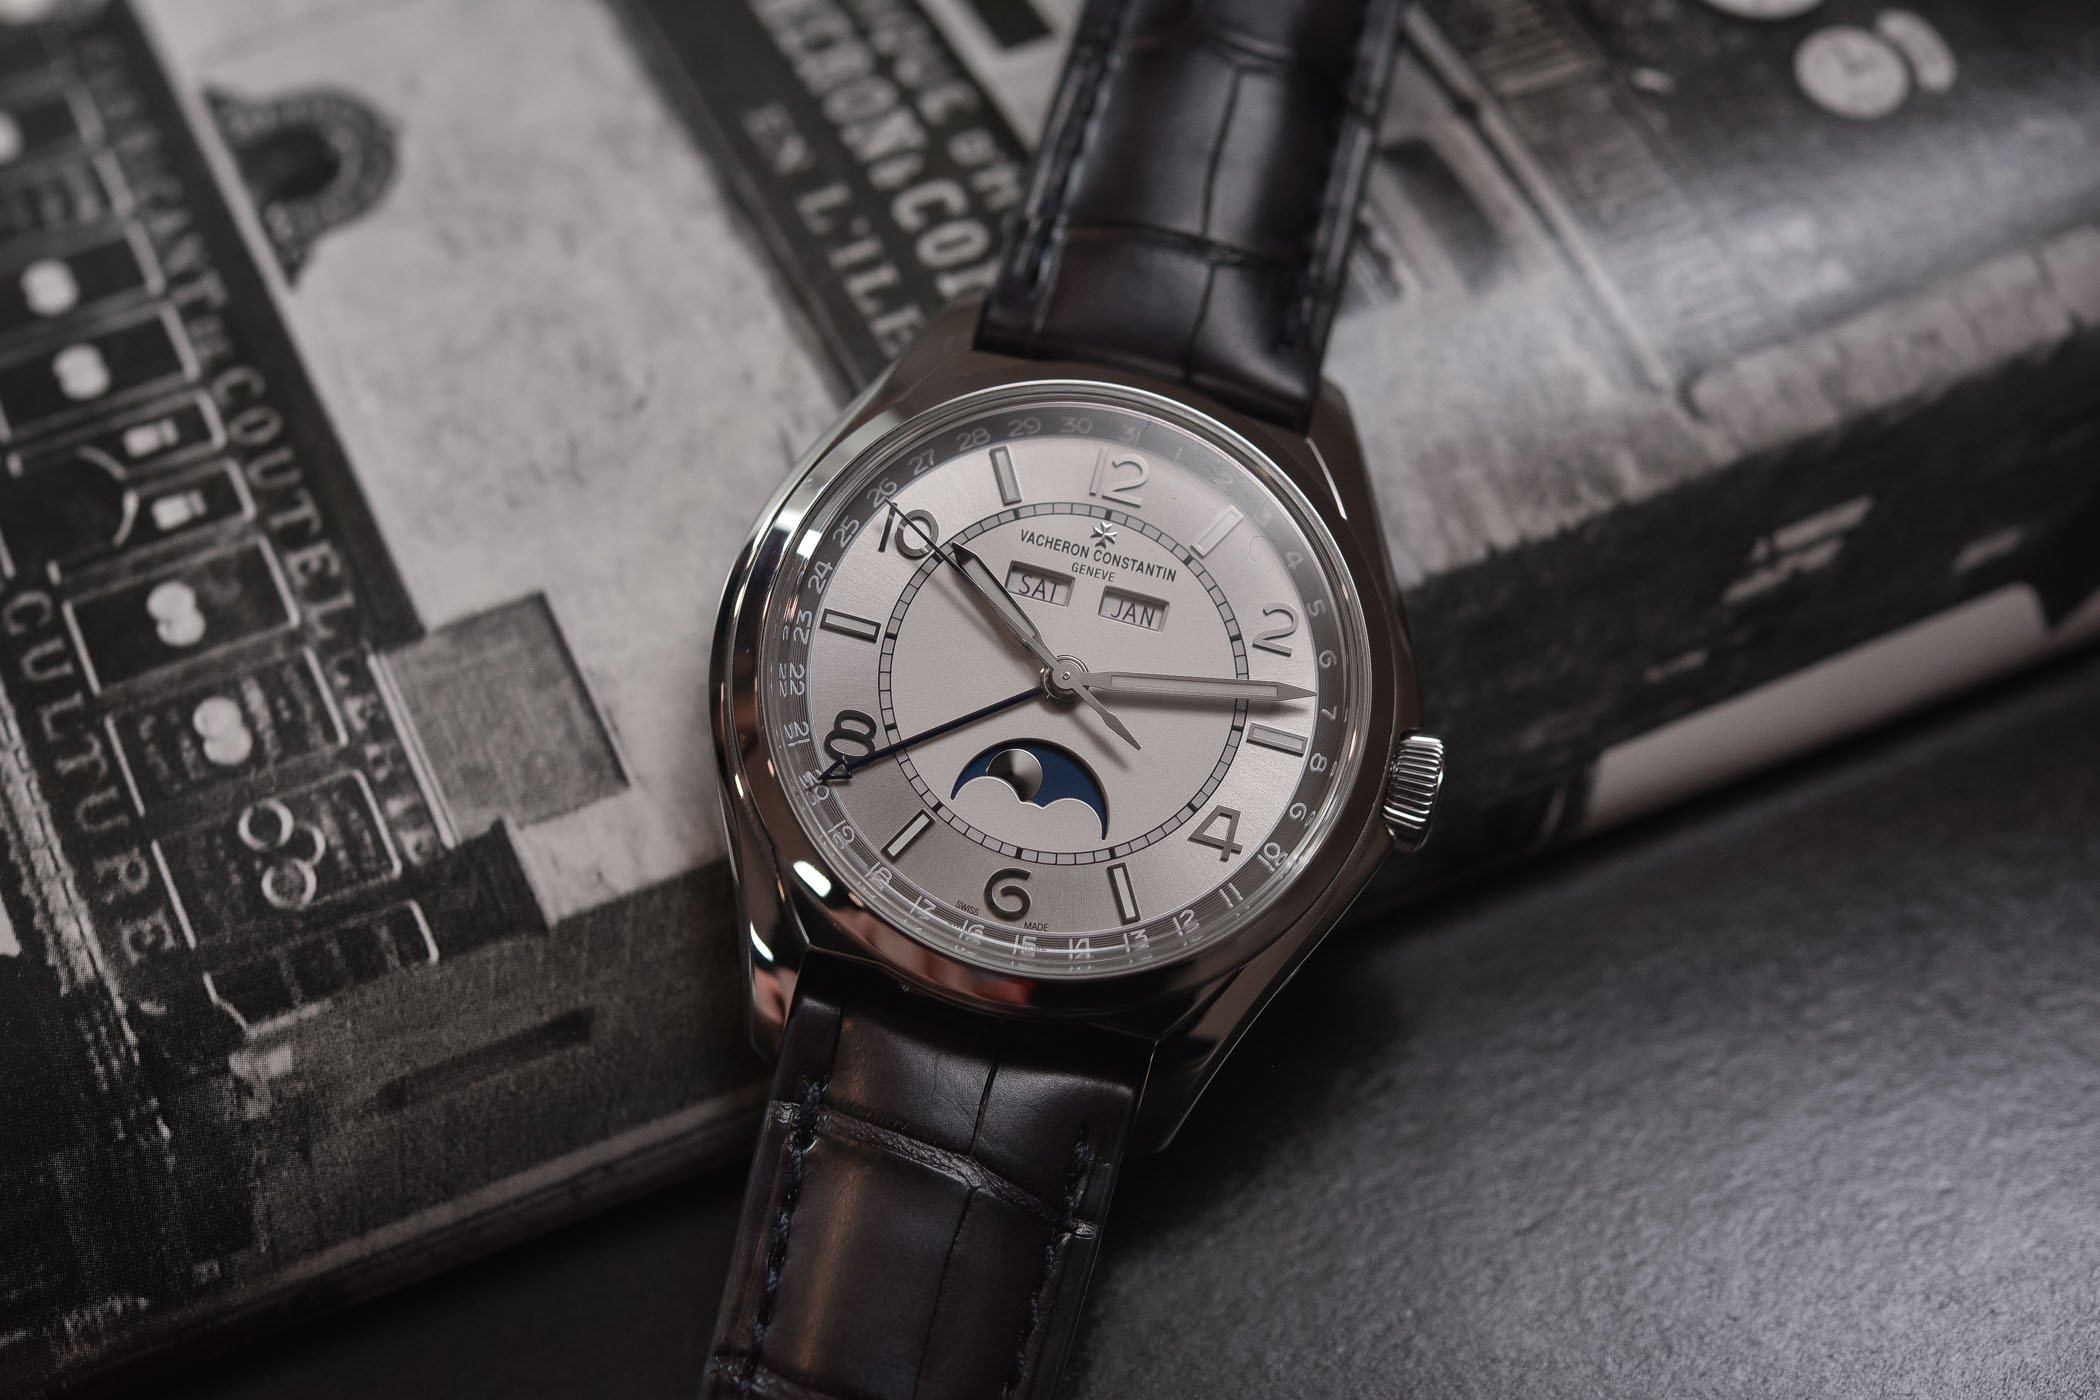 The Vacheron Constantin FiftySix was designed to draw in younger audiences, but is still over $12k